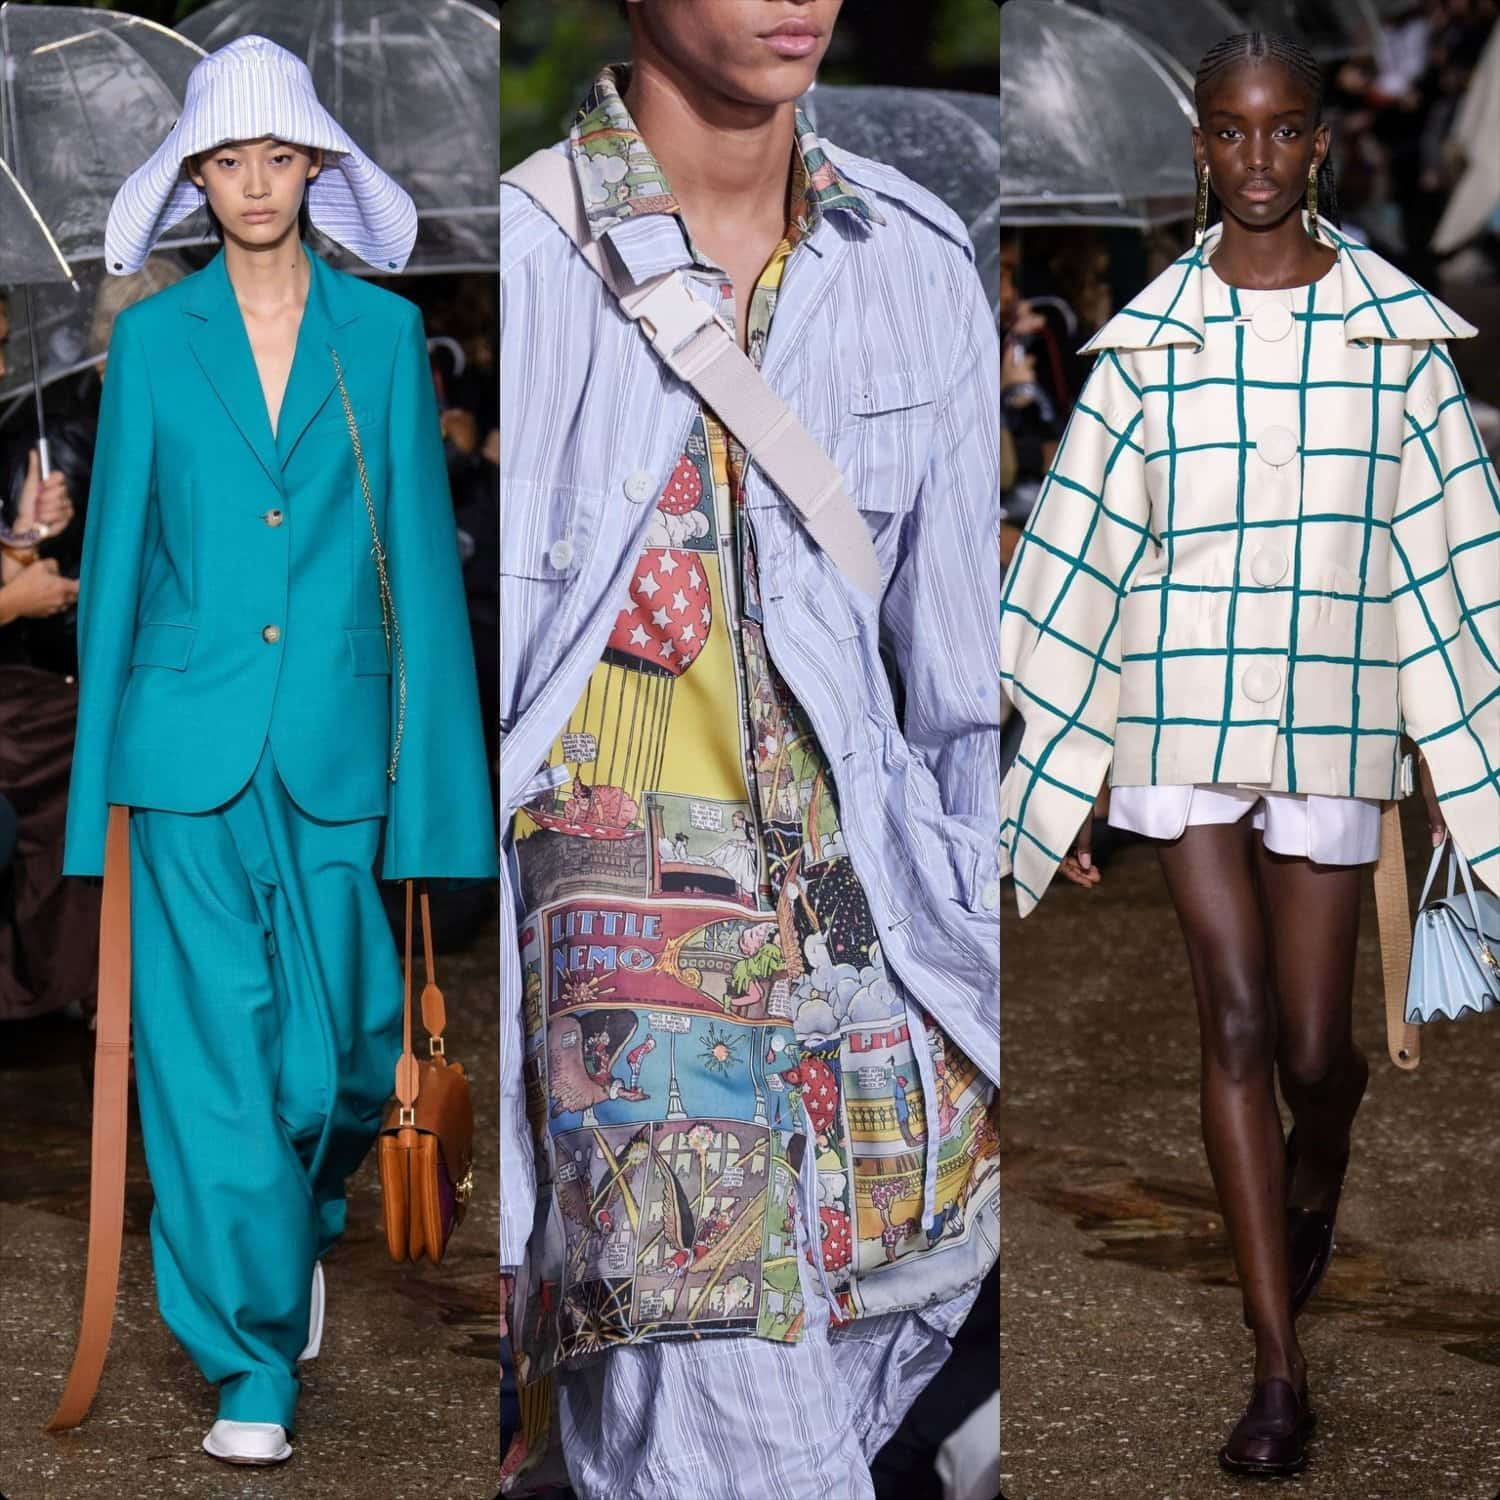 Lanvin Spring Summer 2020 Paris Fashion Week. RUNWAY MAGAZINE ® Collections. RUNWAY NOW / RUNWAY NEW